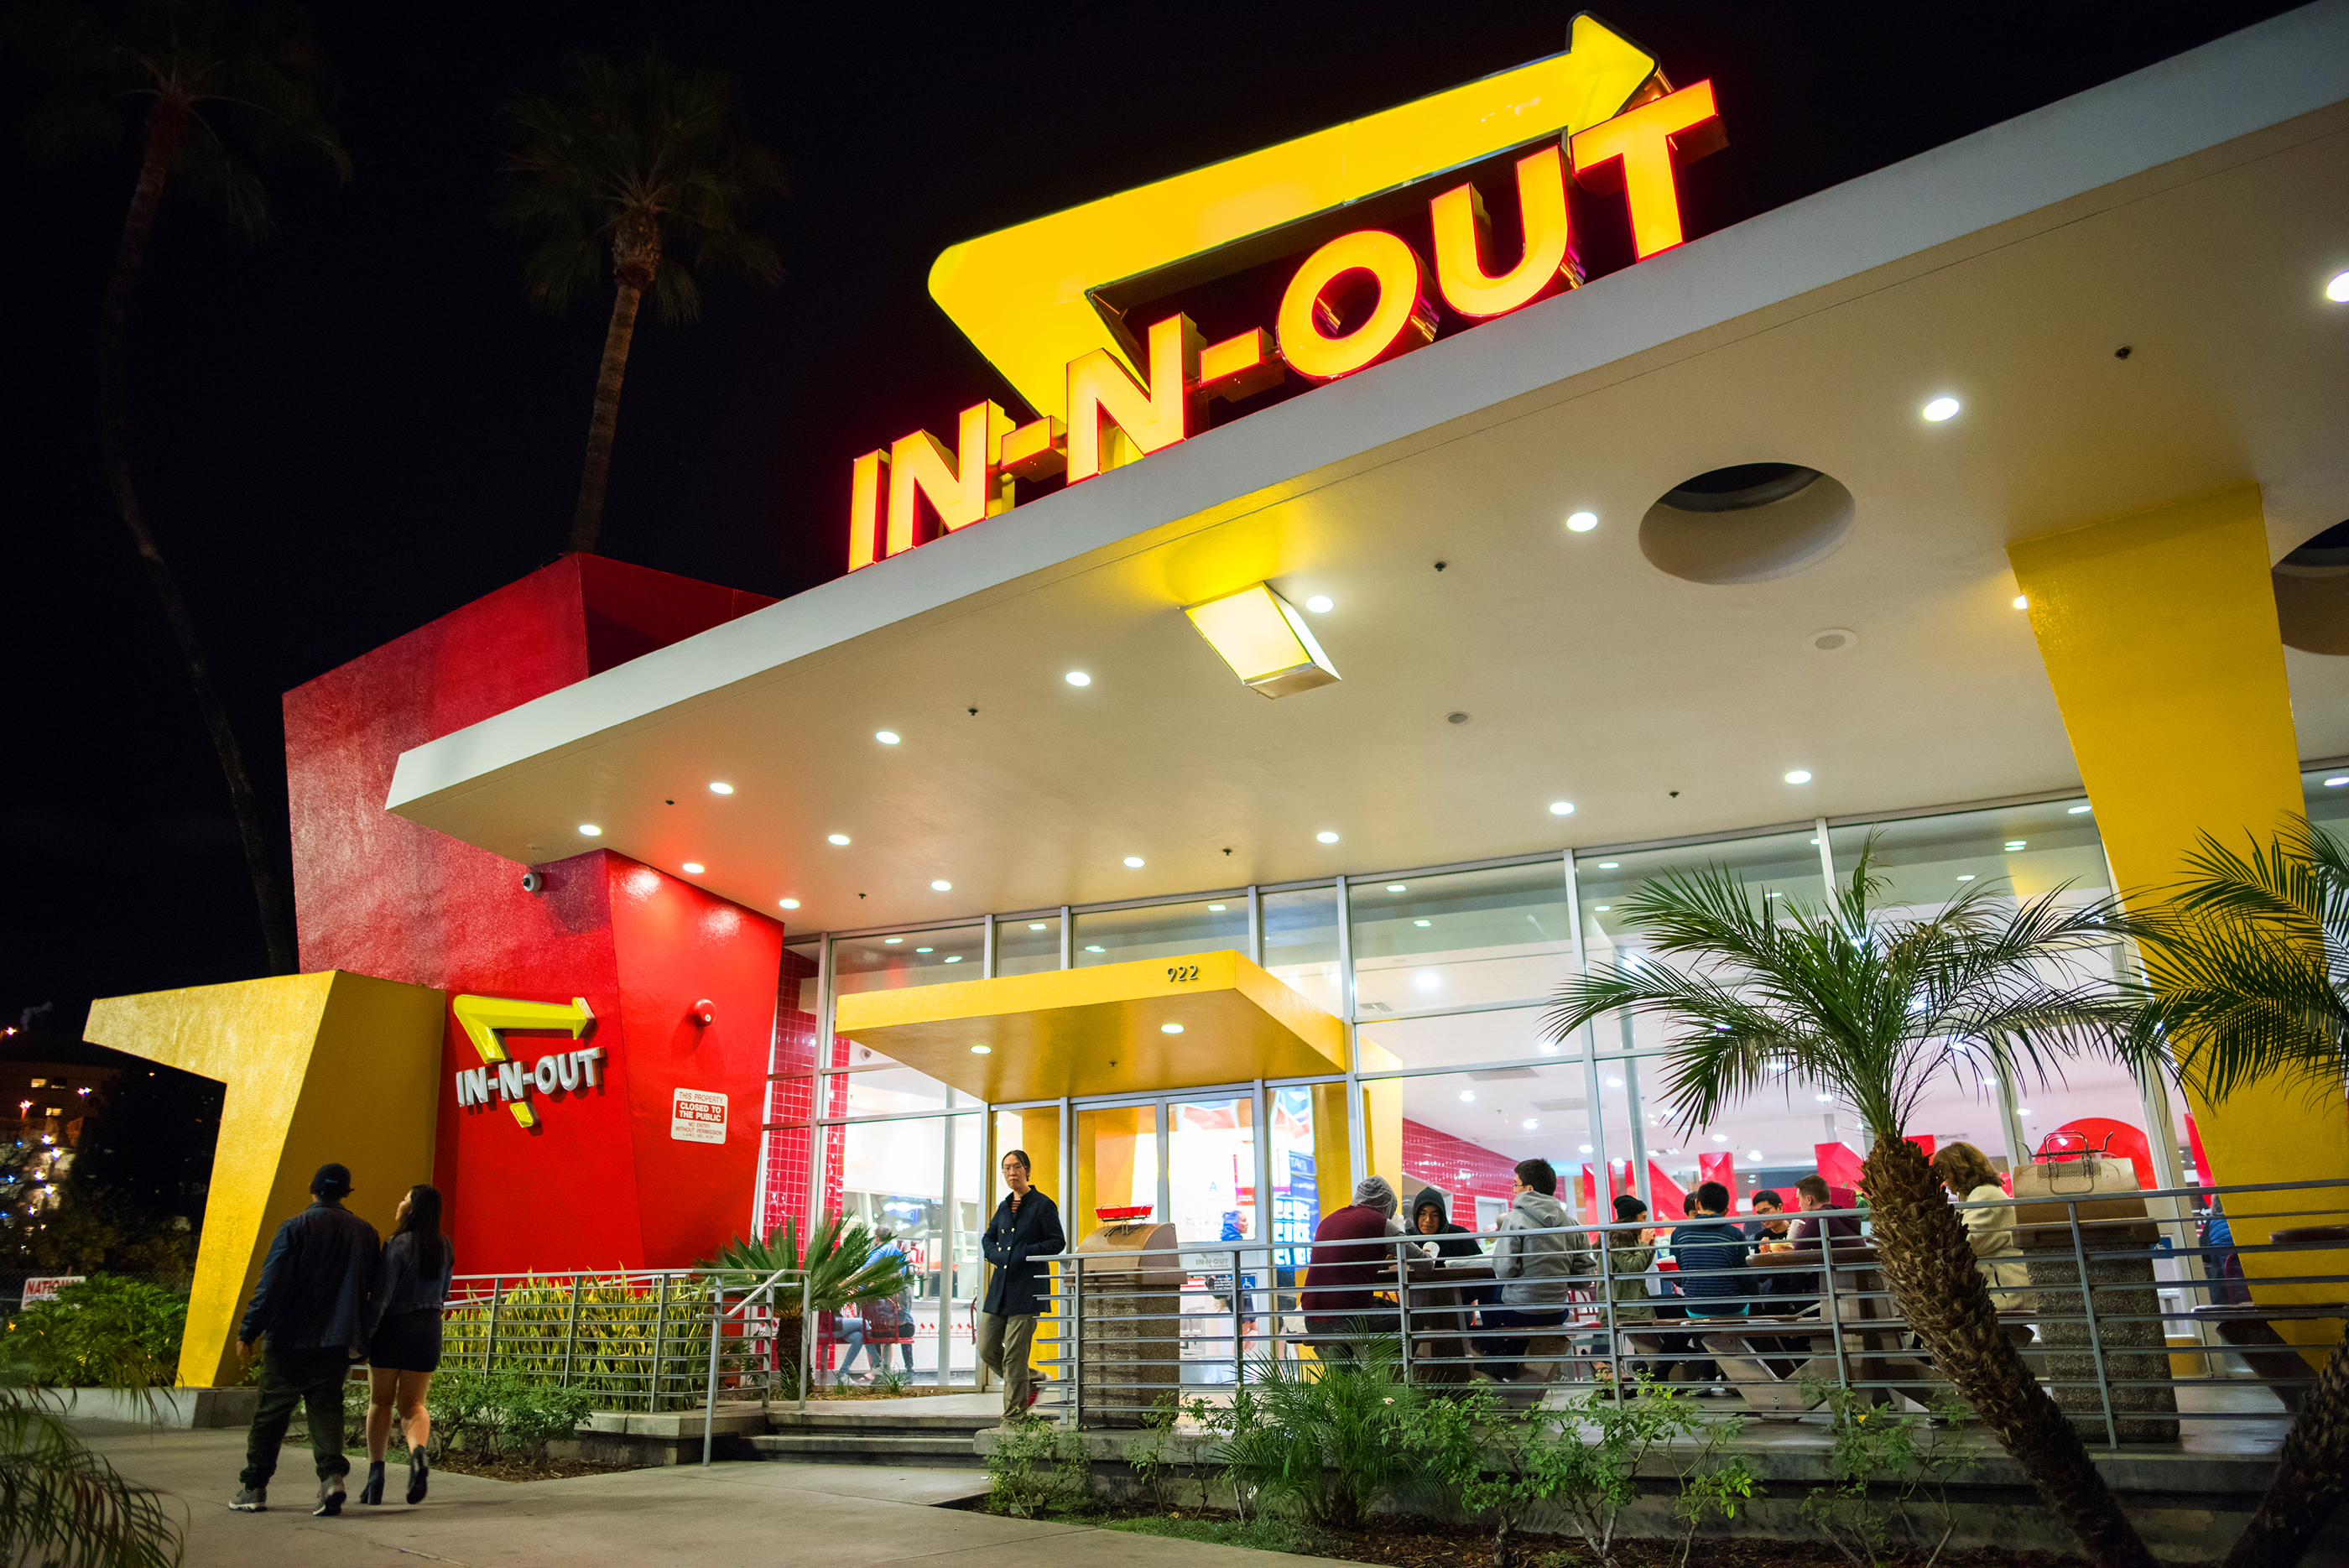 Los Angeles, CA: January 13, 2017: In-N-Out Burger fast food restaurant in Westwood, California. In-N-Out Burger is a private company with 313 locations. ; Shutterstock ID 560049205; Publication: Money; Job: 4/5/18 Fast Food; Client/Licensee: Sarina Finkelstein; Other: